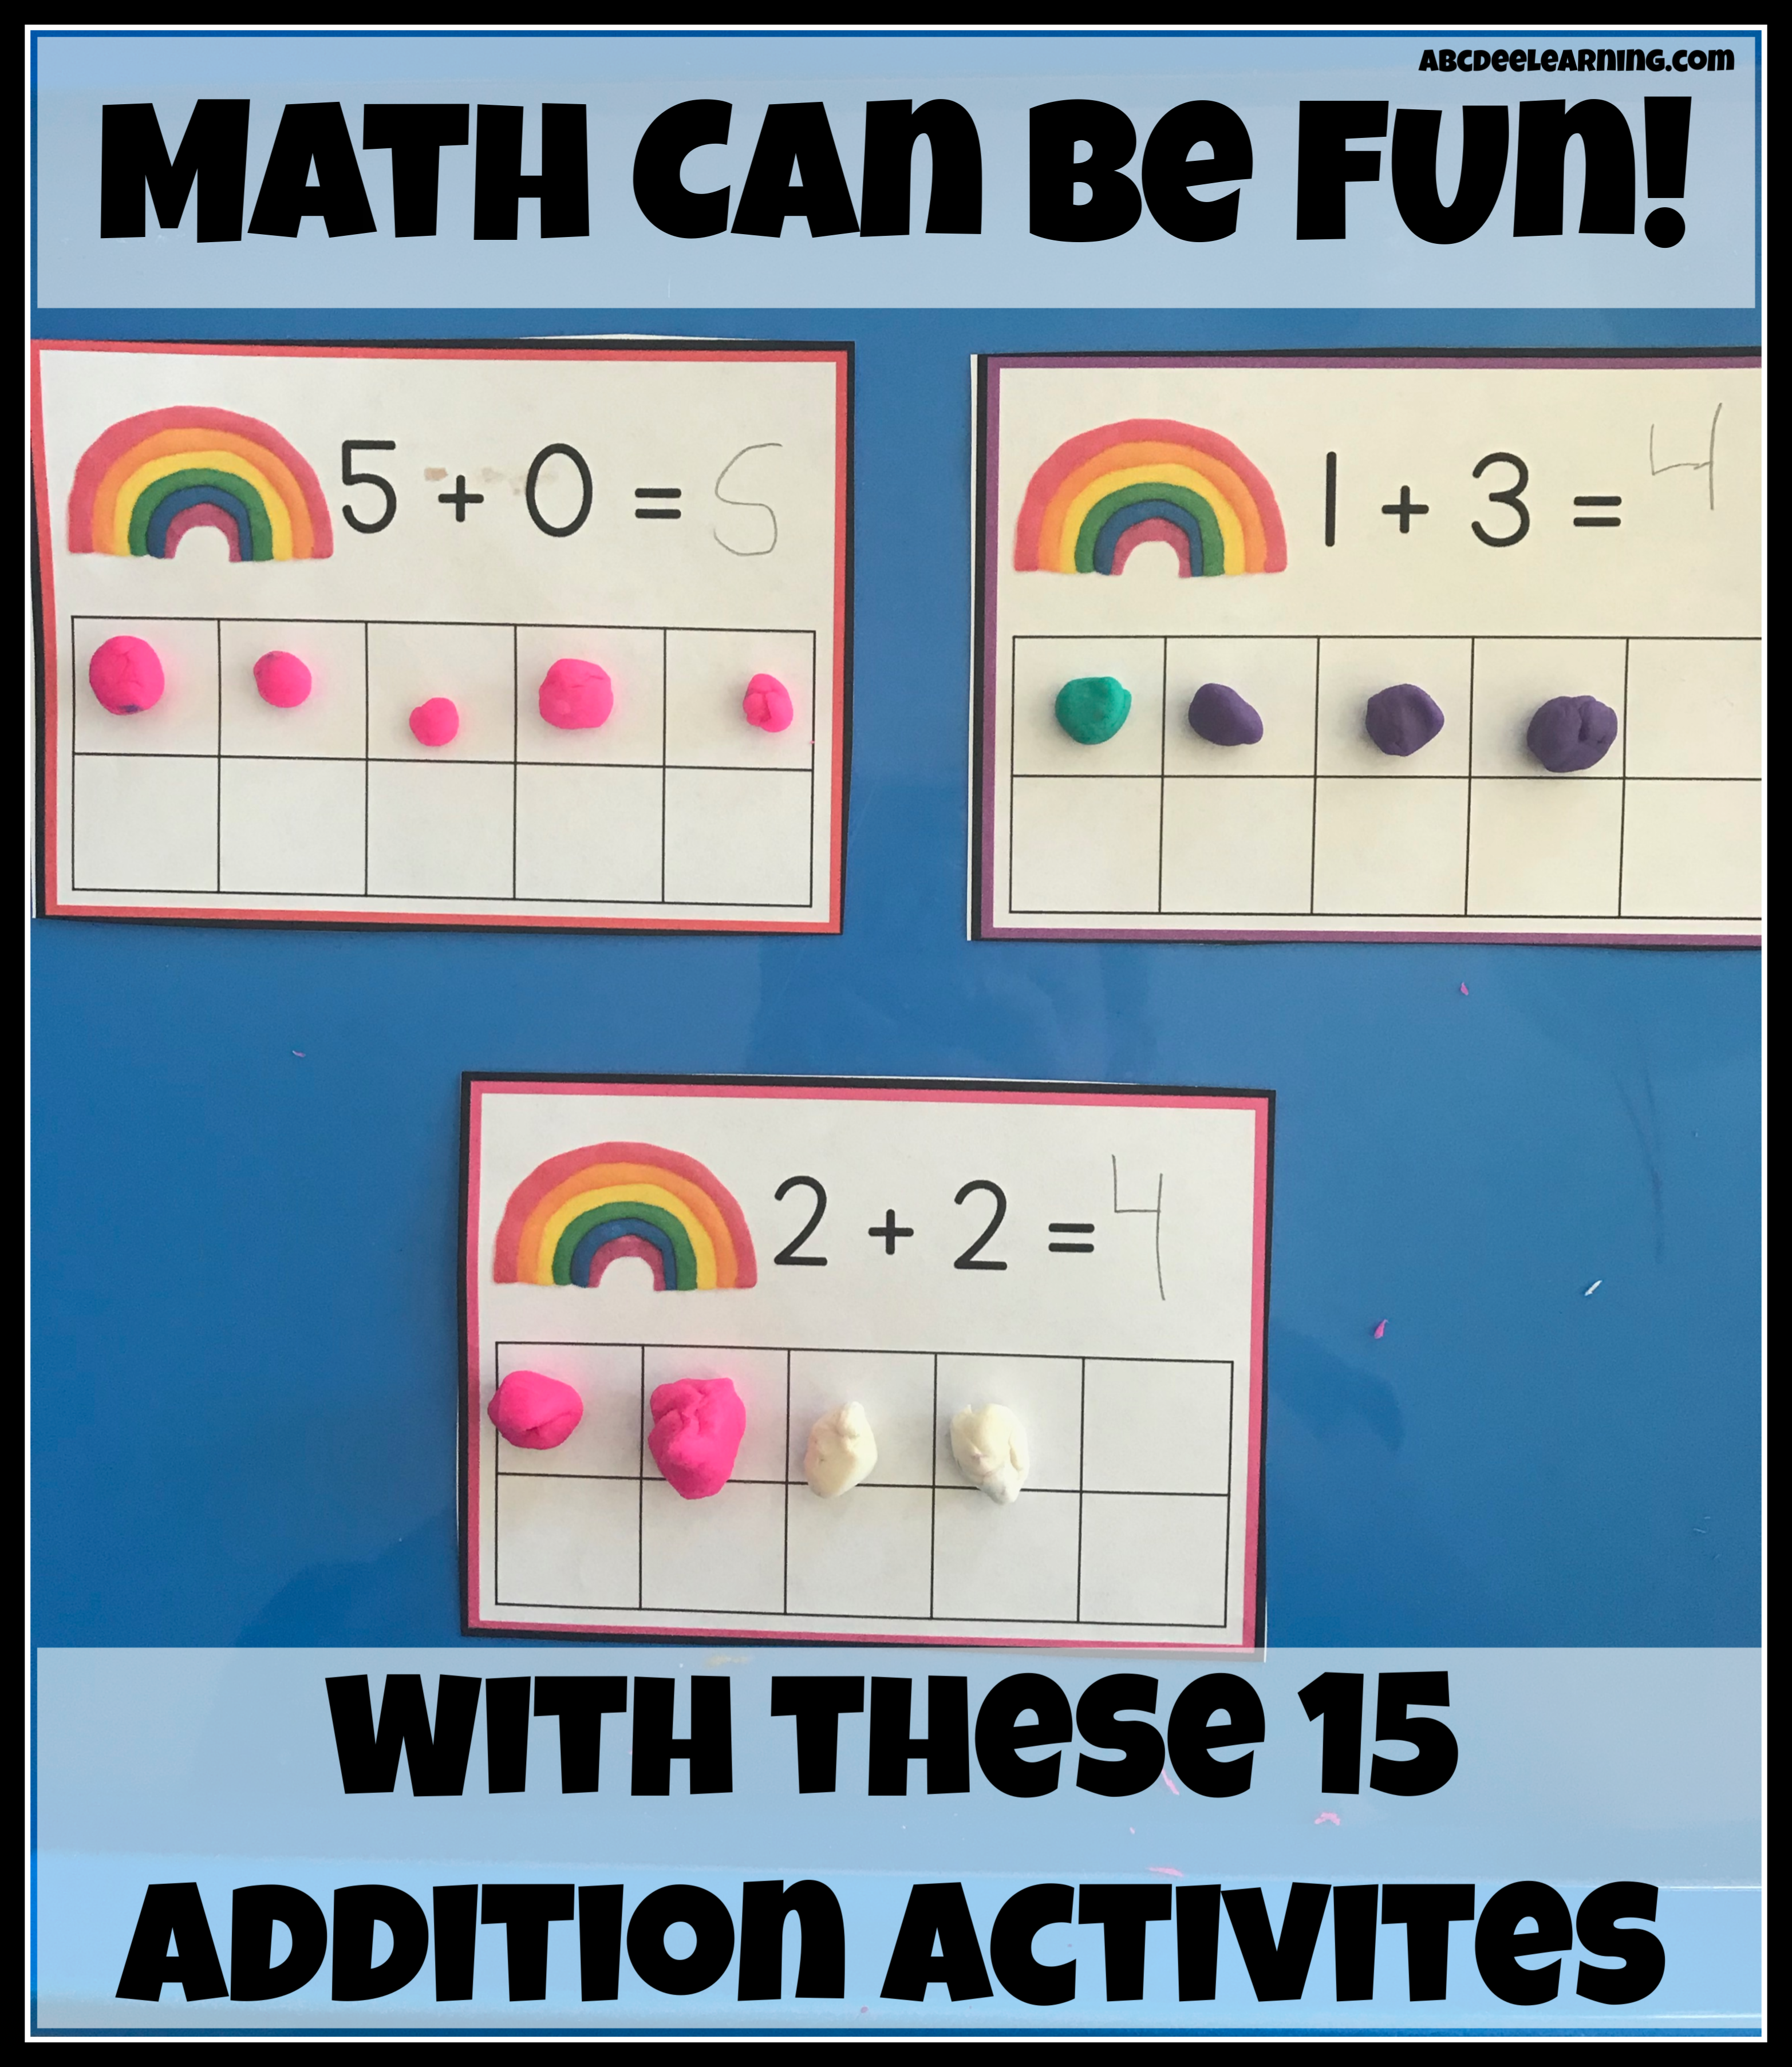 Practicing Addition Can Be Fun With My 15 Activities For